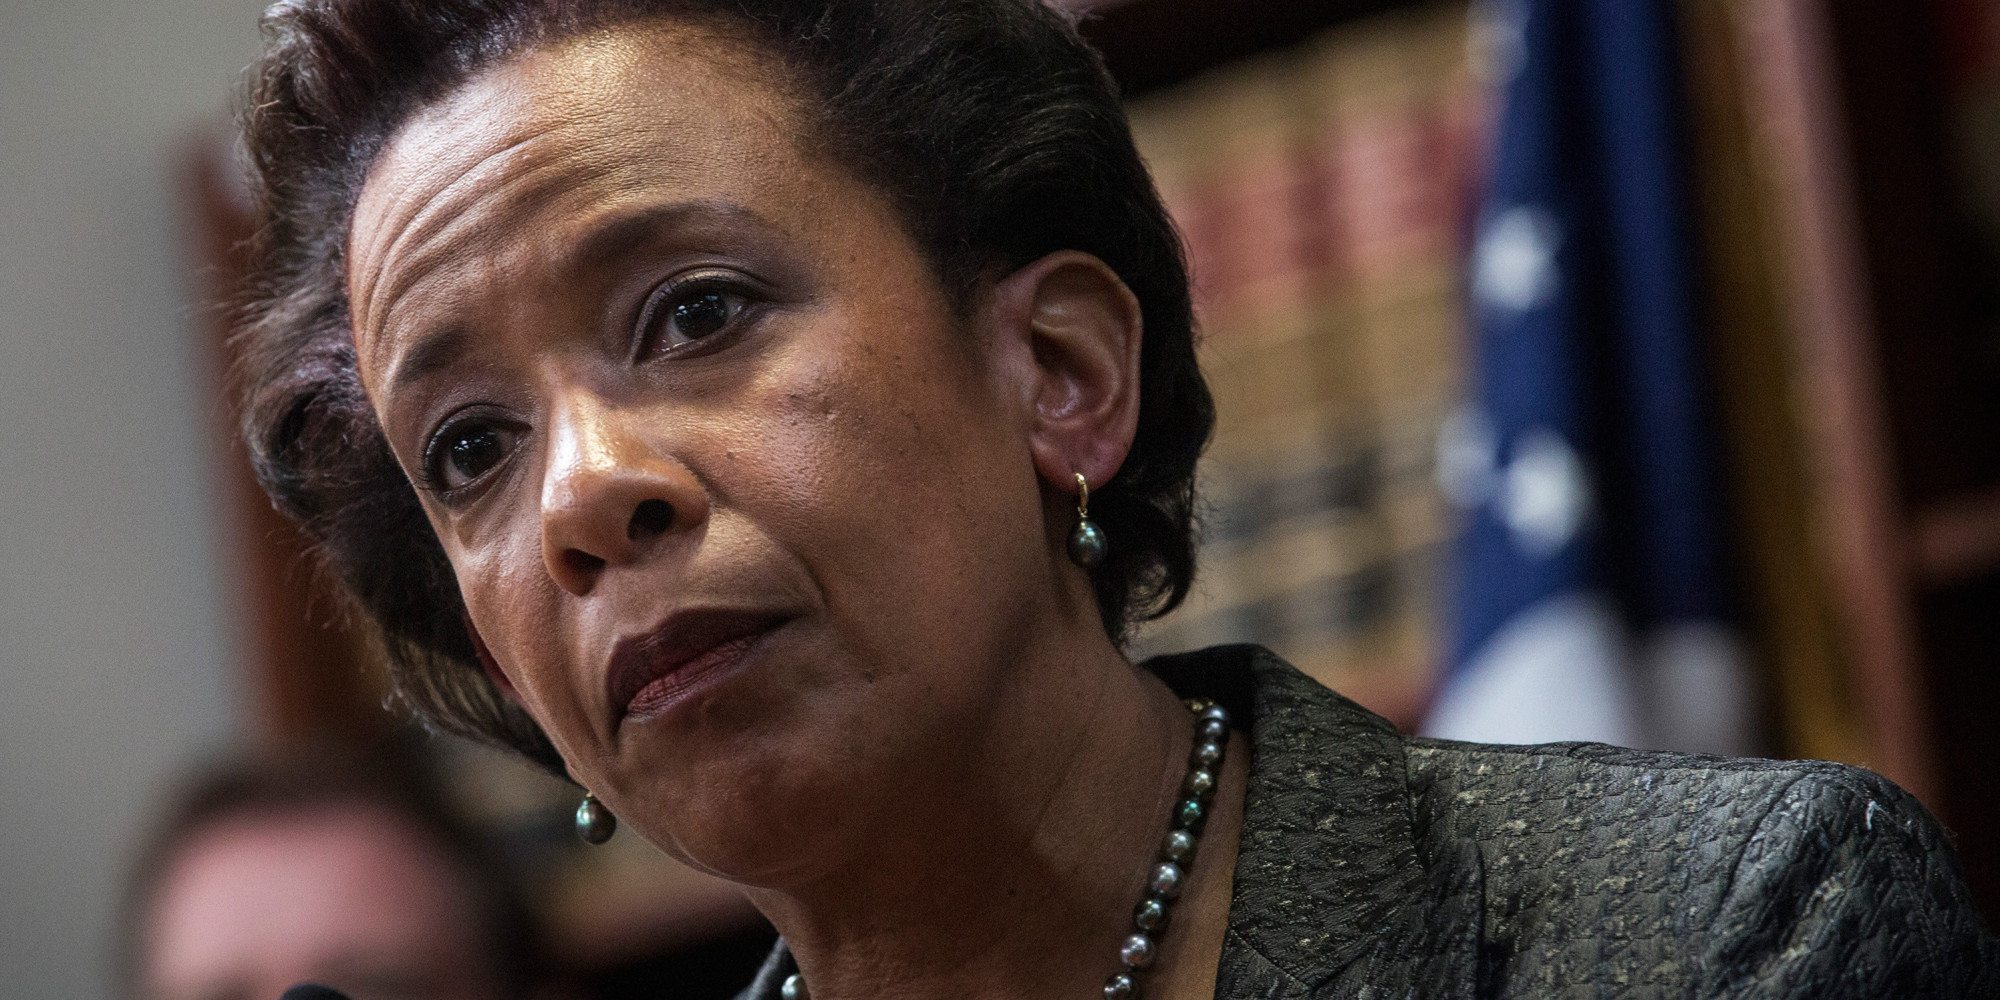 brooklyn prosecutor loretta lynch emerges as a top candidate for brooklyn prosecutor loretta lynch emerges as a top candidate for attorney general the huffington post